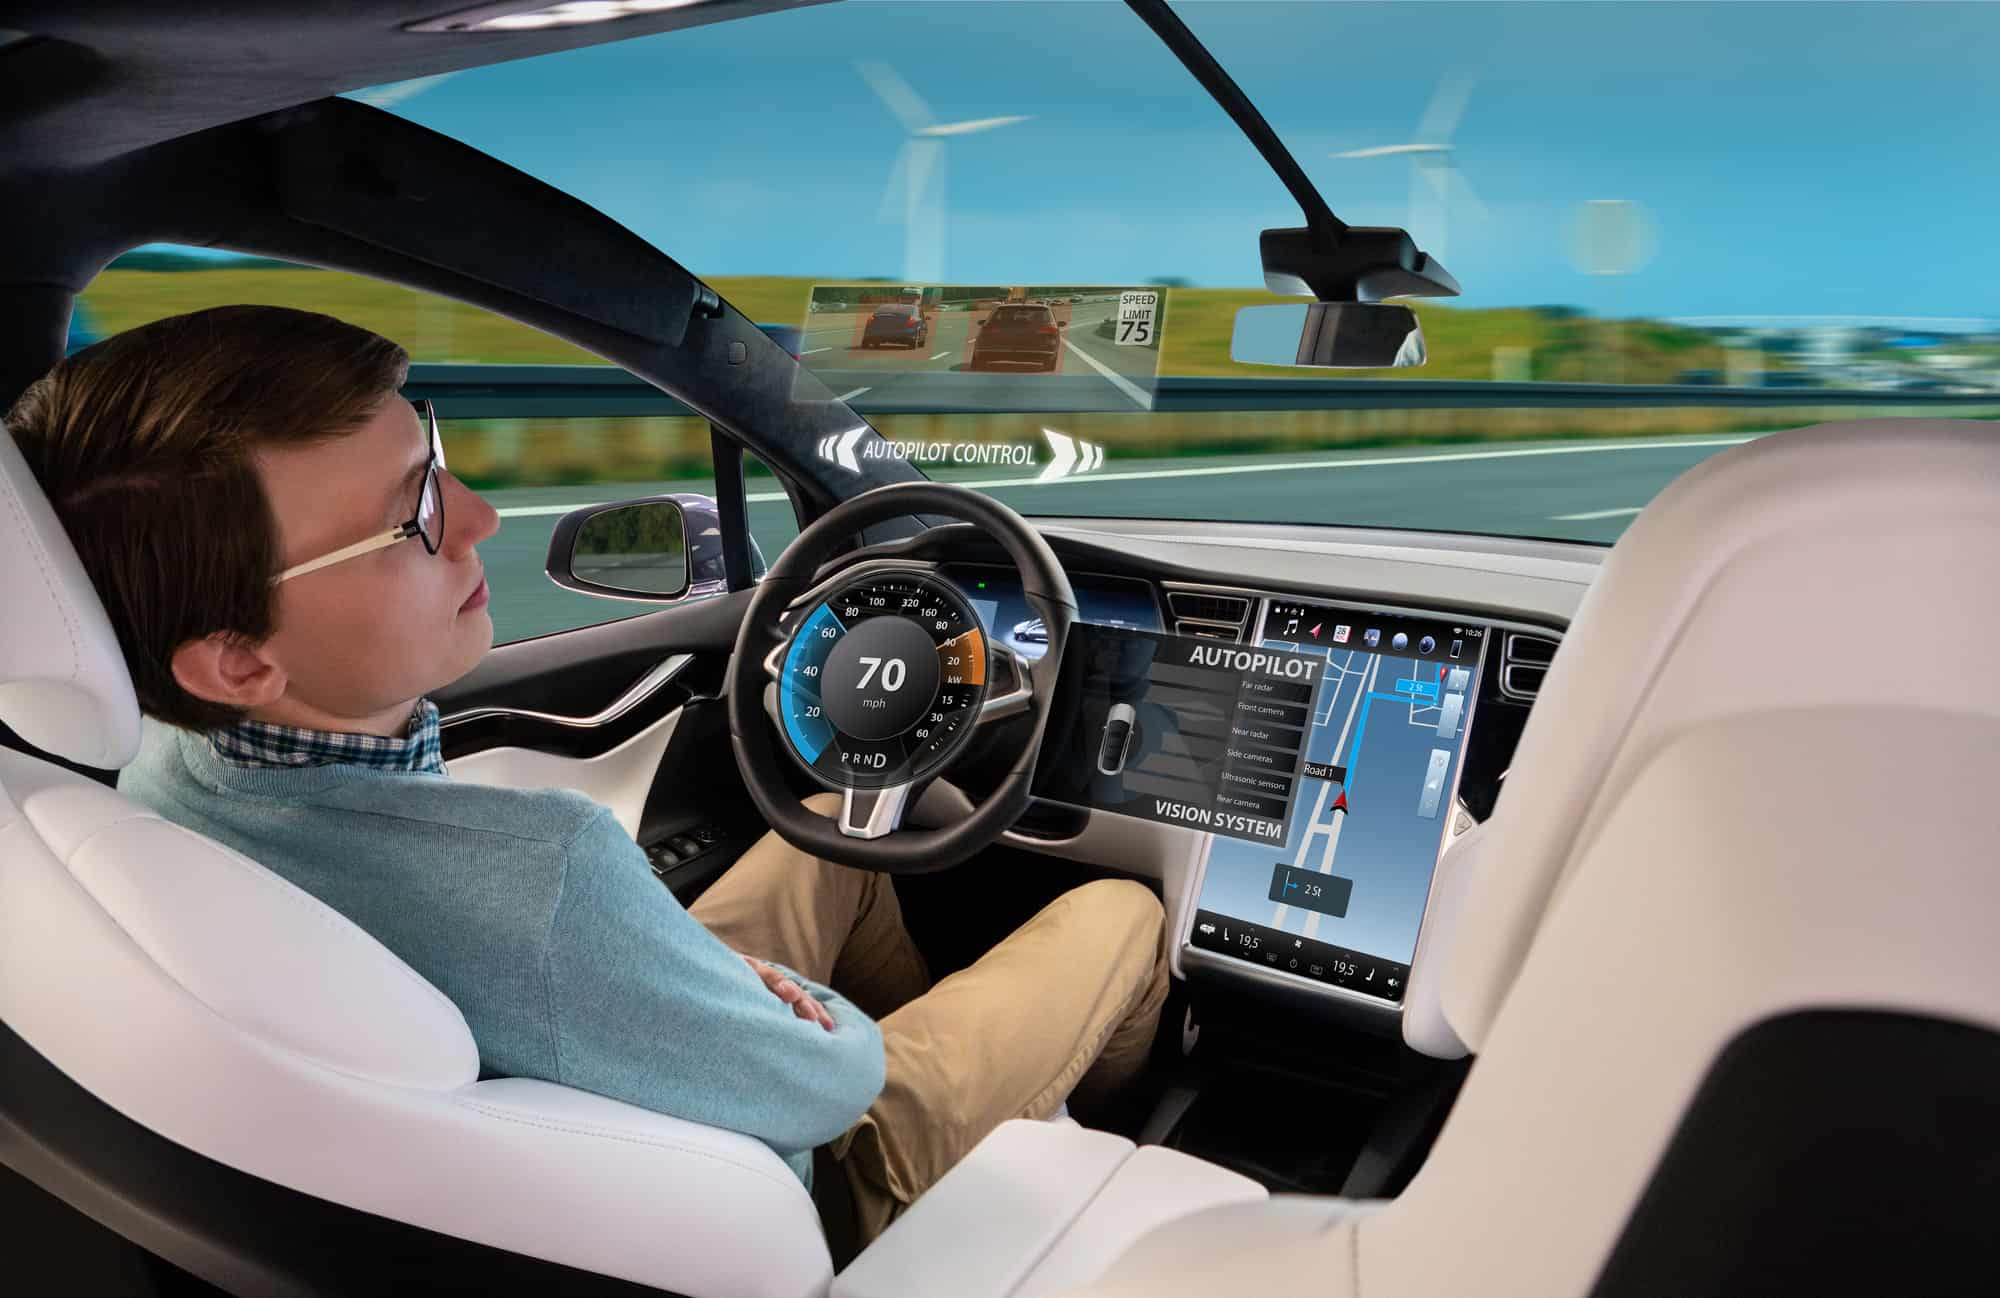 A mockup of someone asleep at the wheel with the EV on autopilot